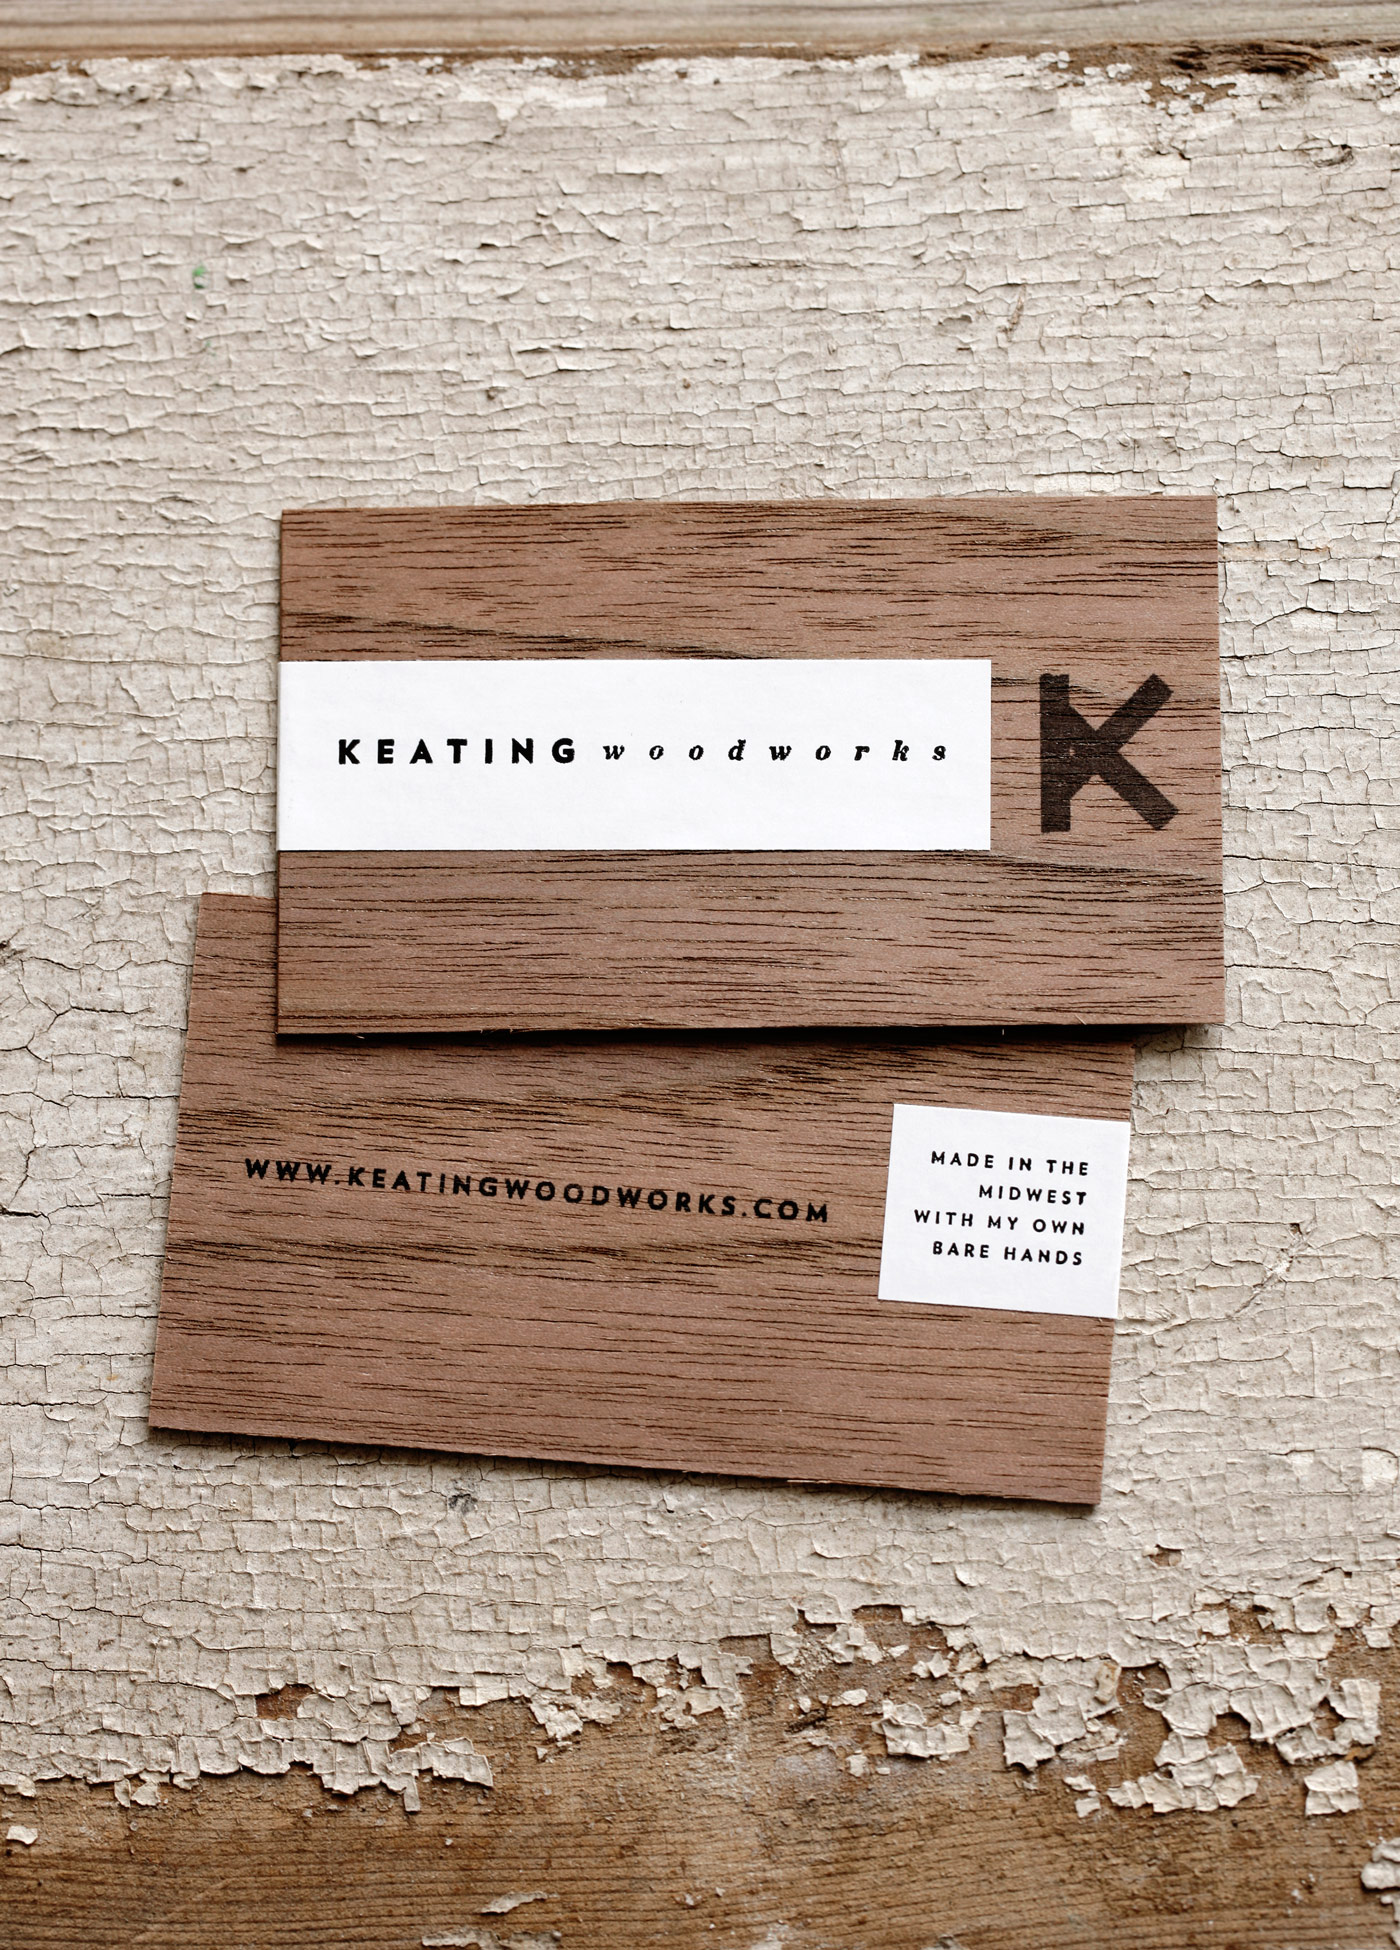 Keating Woodworks - The Heads of State